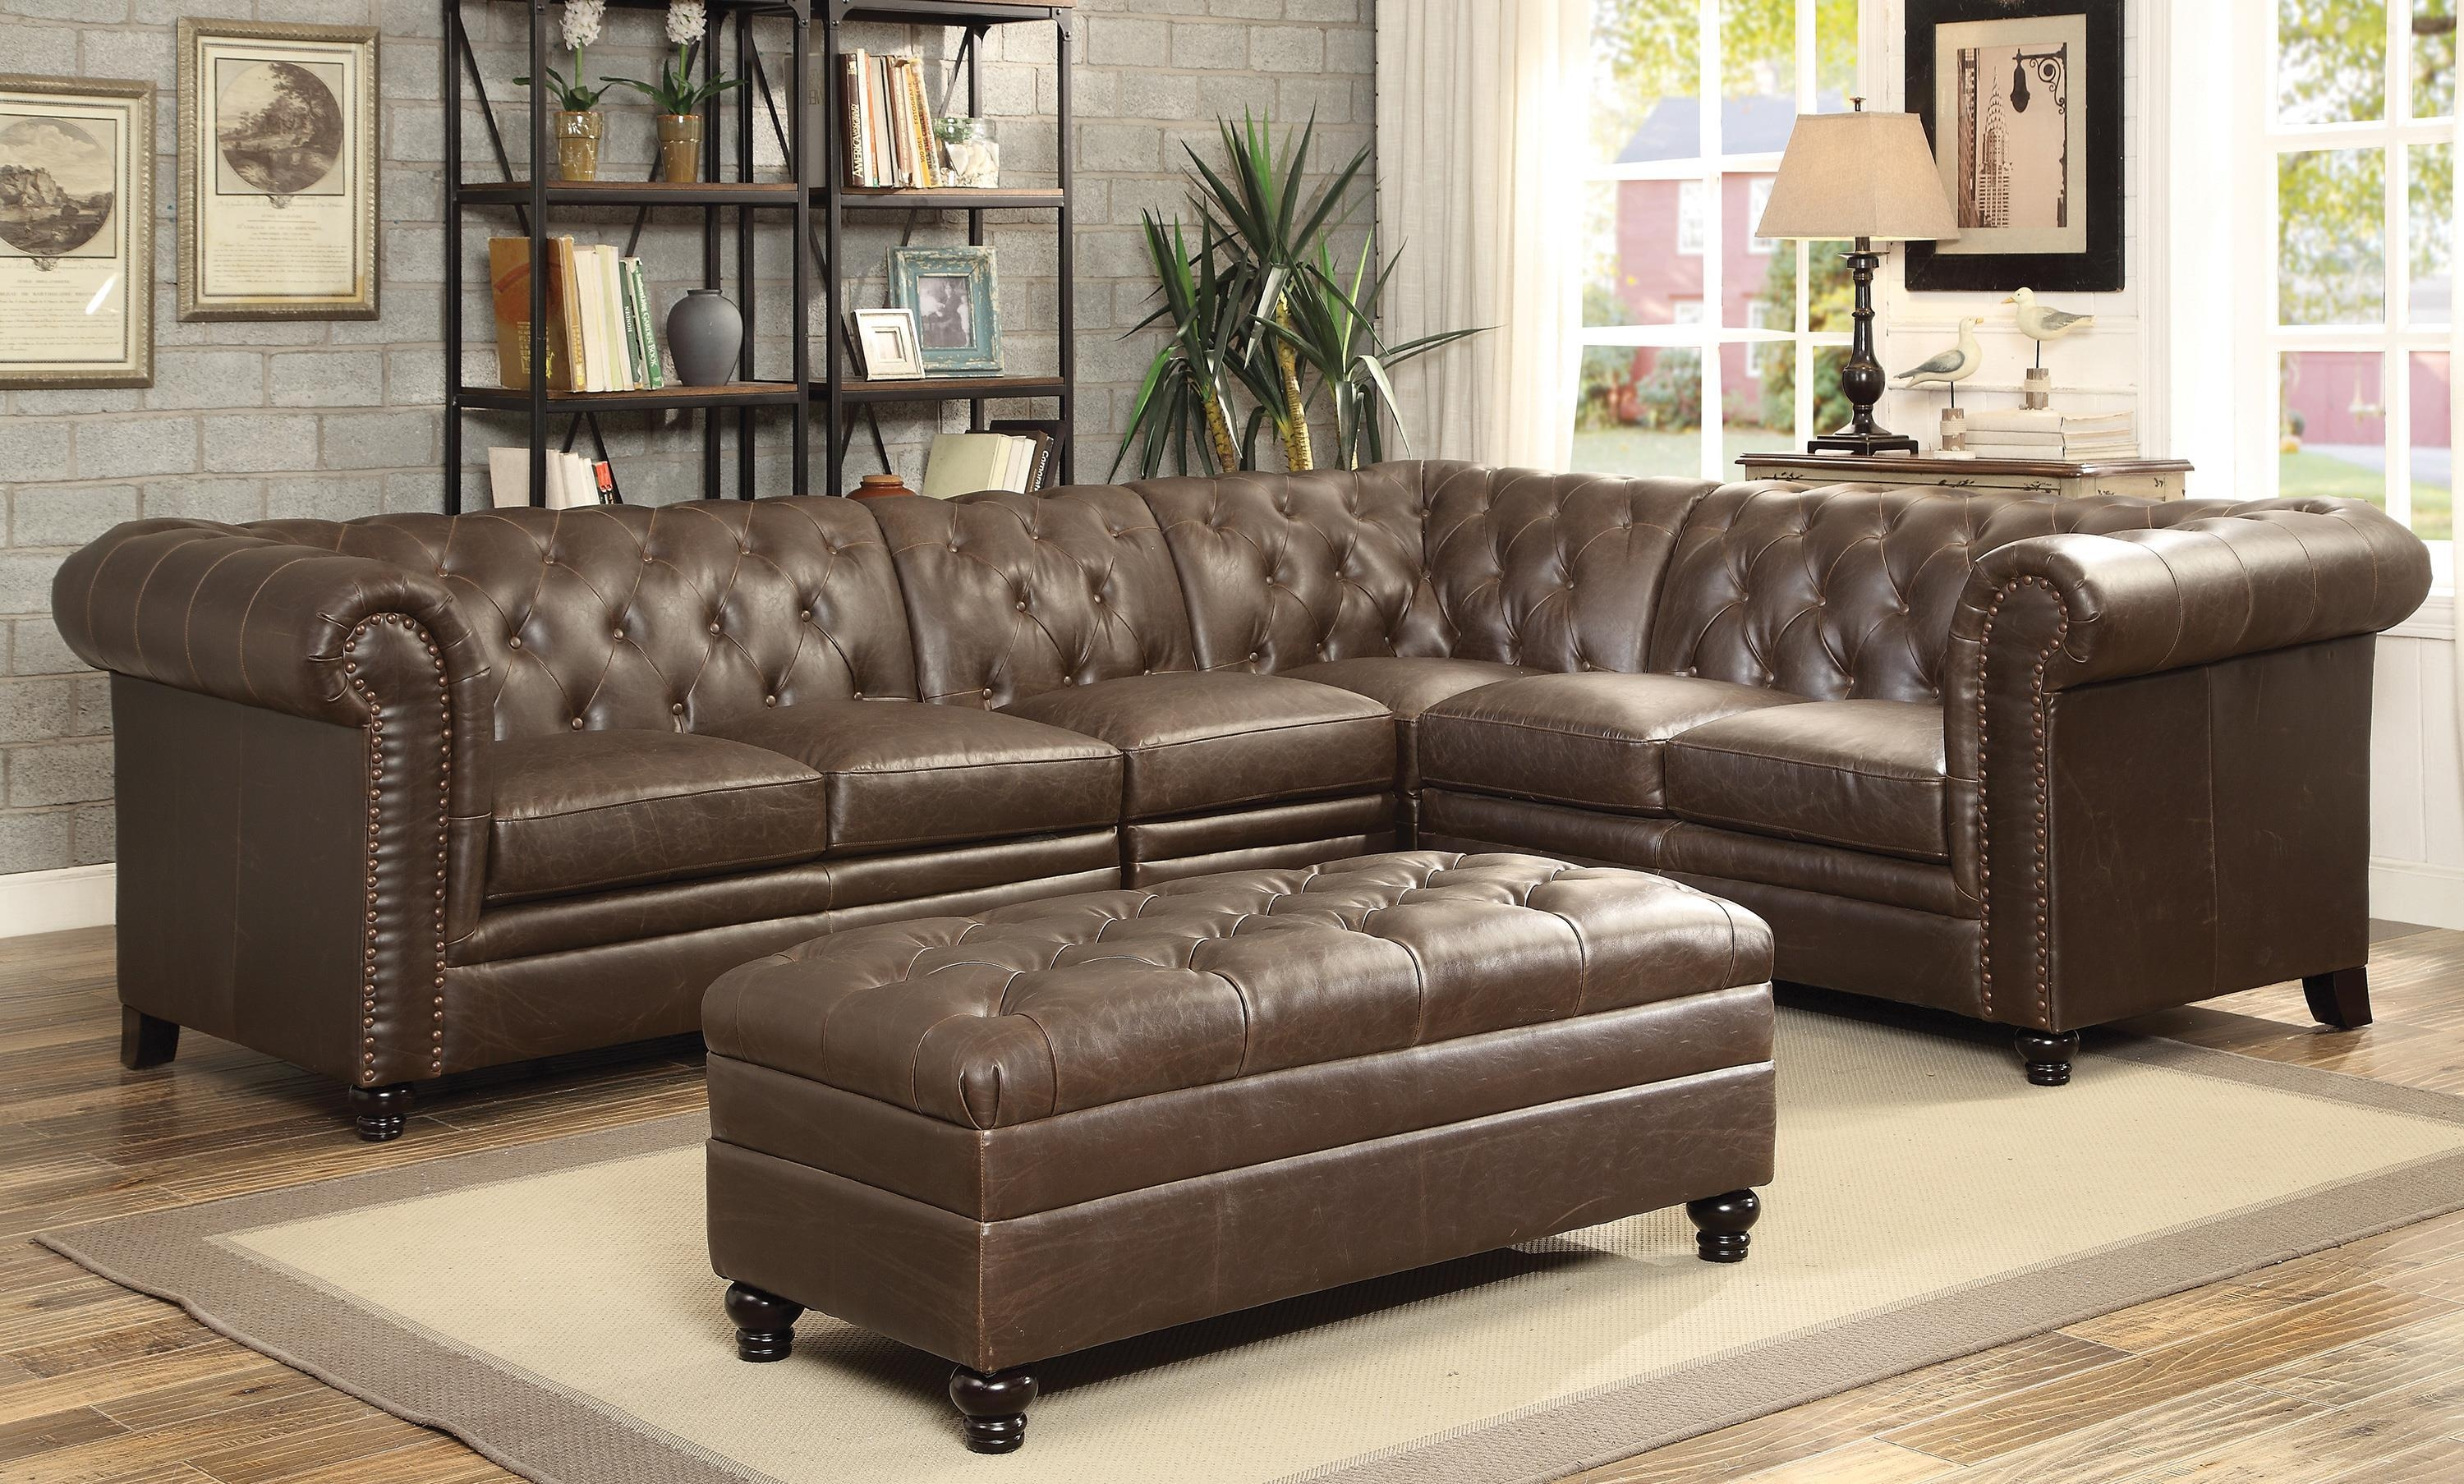 coaster tess sectional sofa dye covers edinburgh decorating interior of your house 20 best ideas traditional sofas sleeper modular